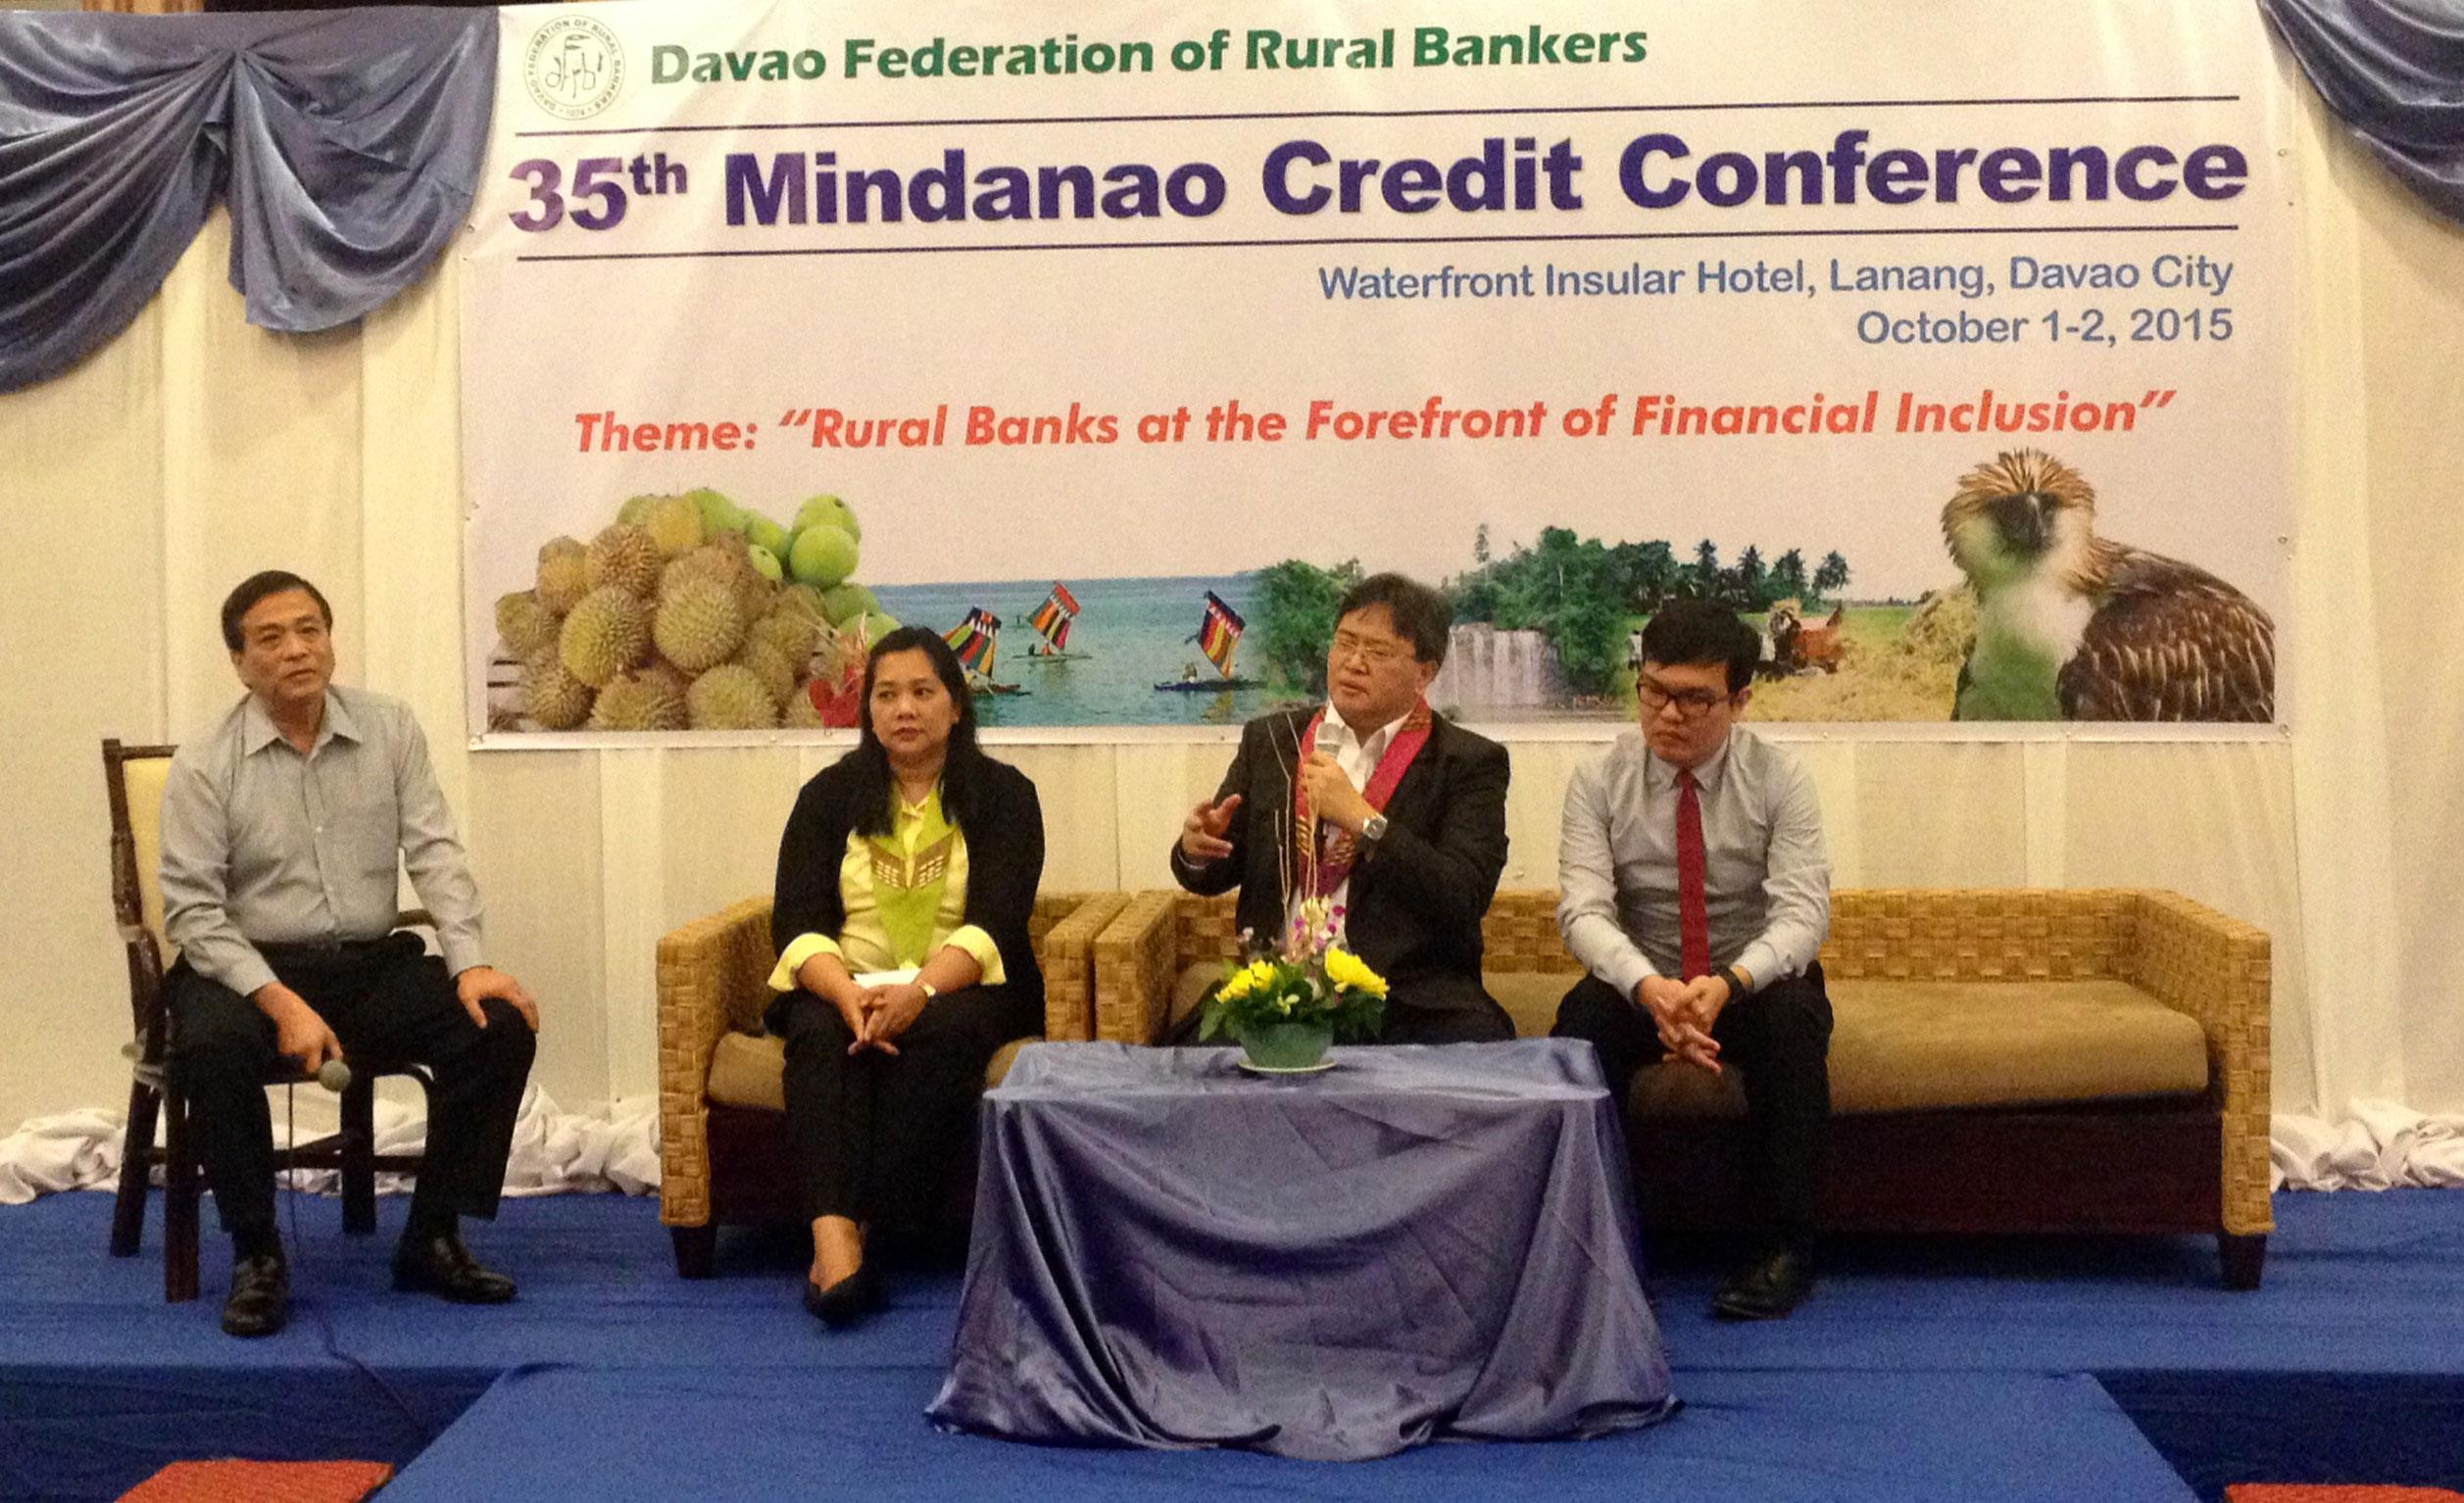 35th-Mindanao-Credit-Conference-in-Davao-City-full